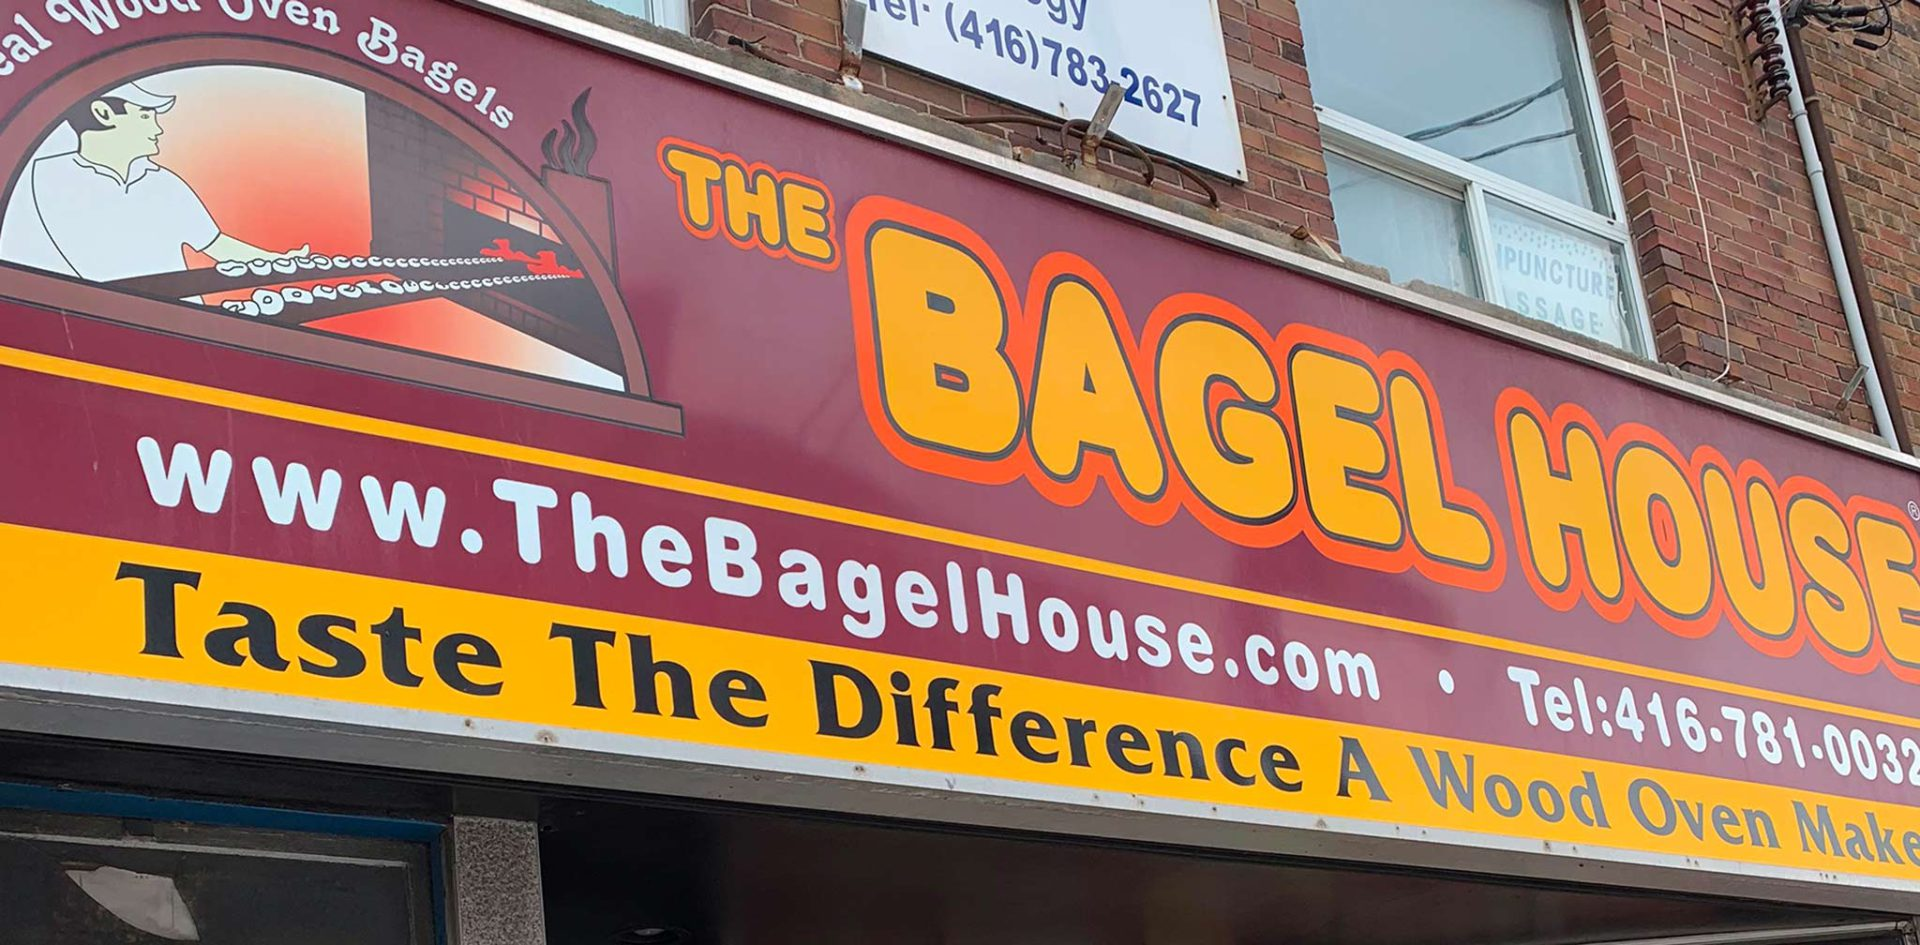 """<h3>The Bagel House</h3>""""> </div> <div class="""